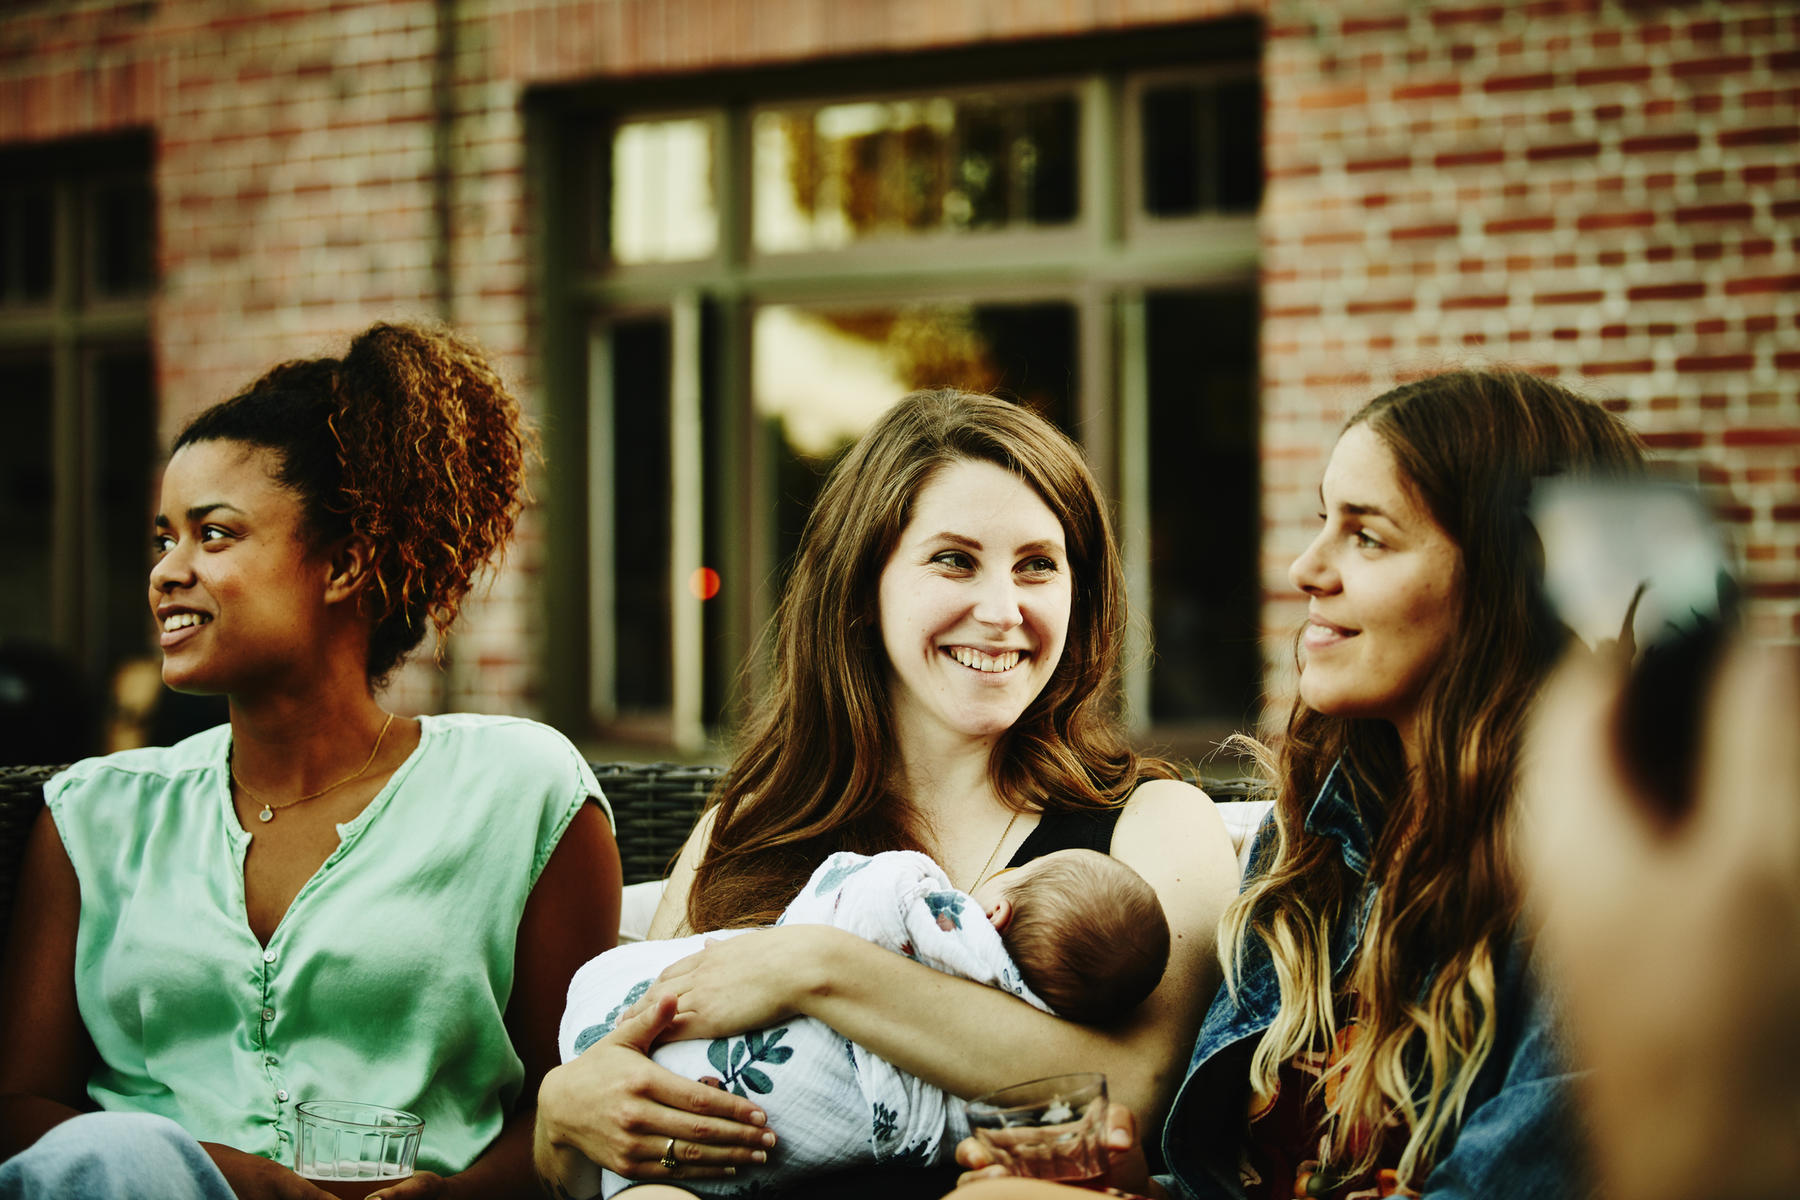 New mom holding baby while hanging out with friends